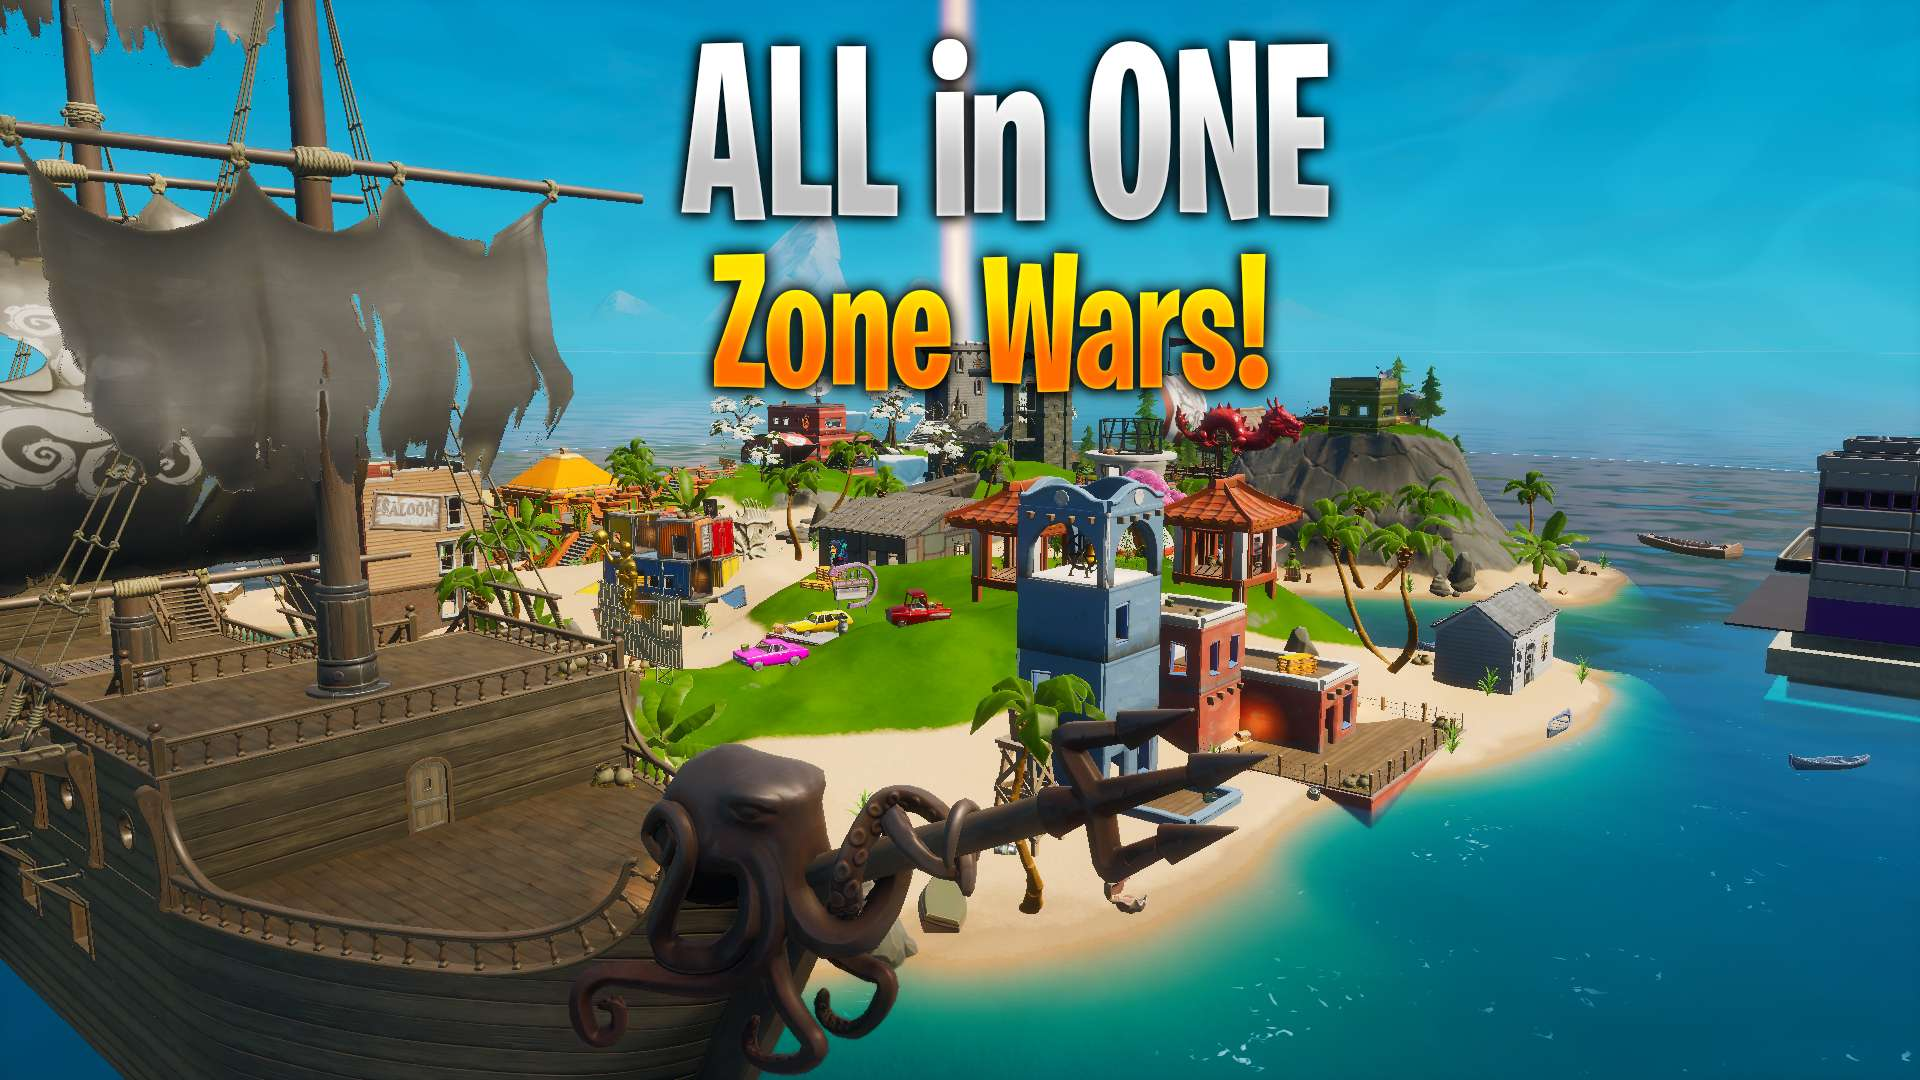 ALL IN ONE ZONE WARS!